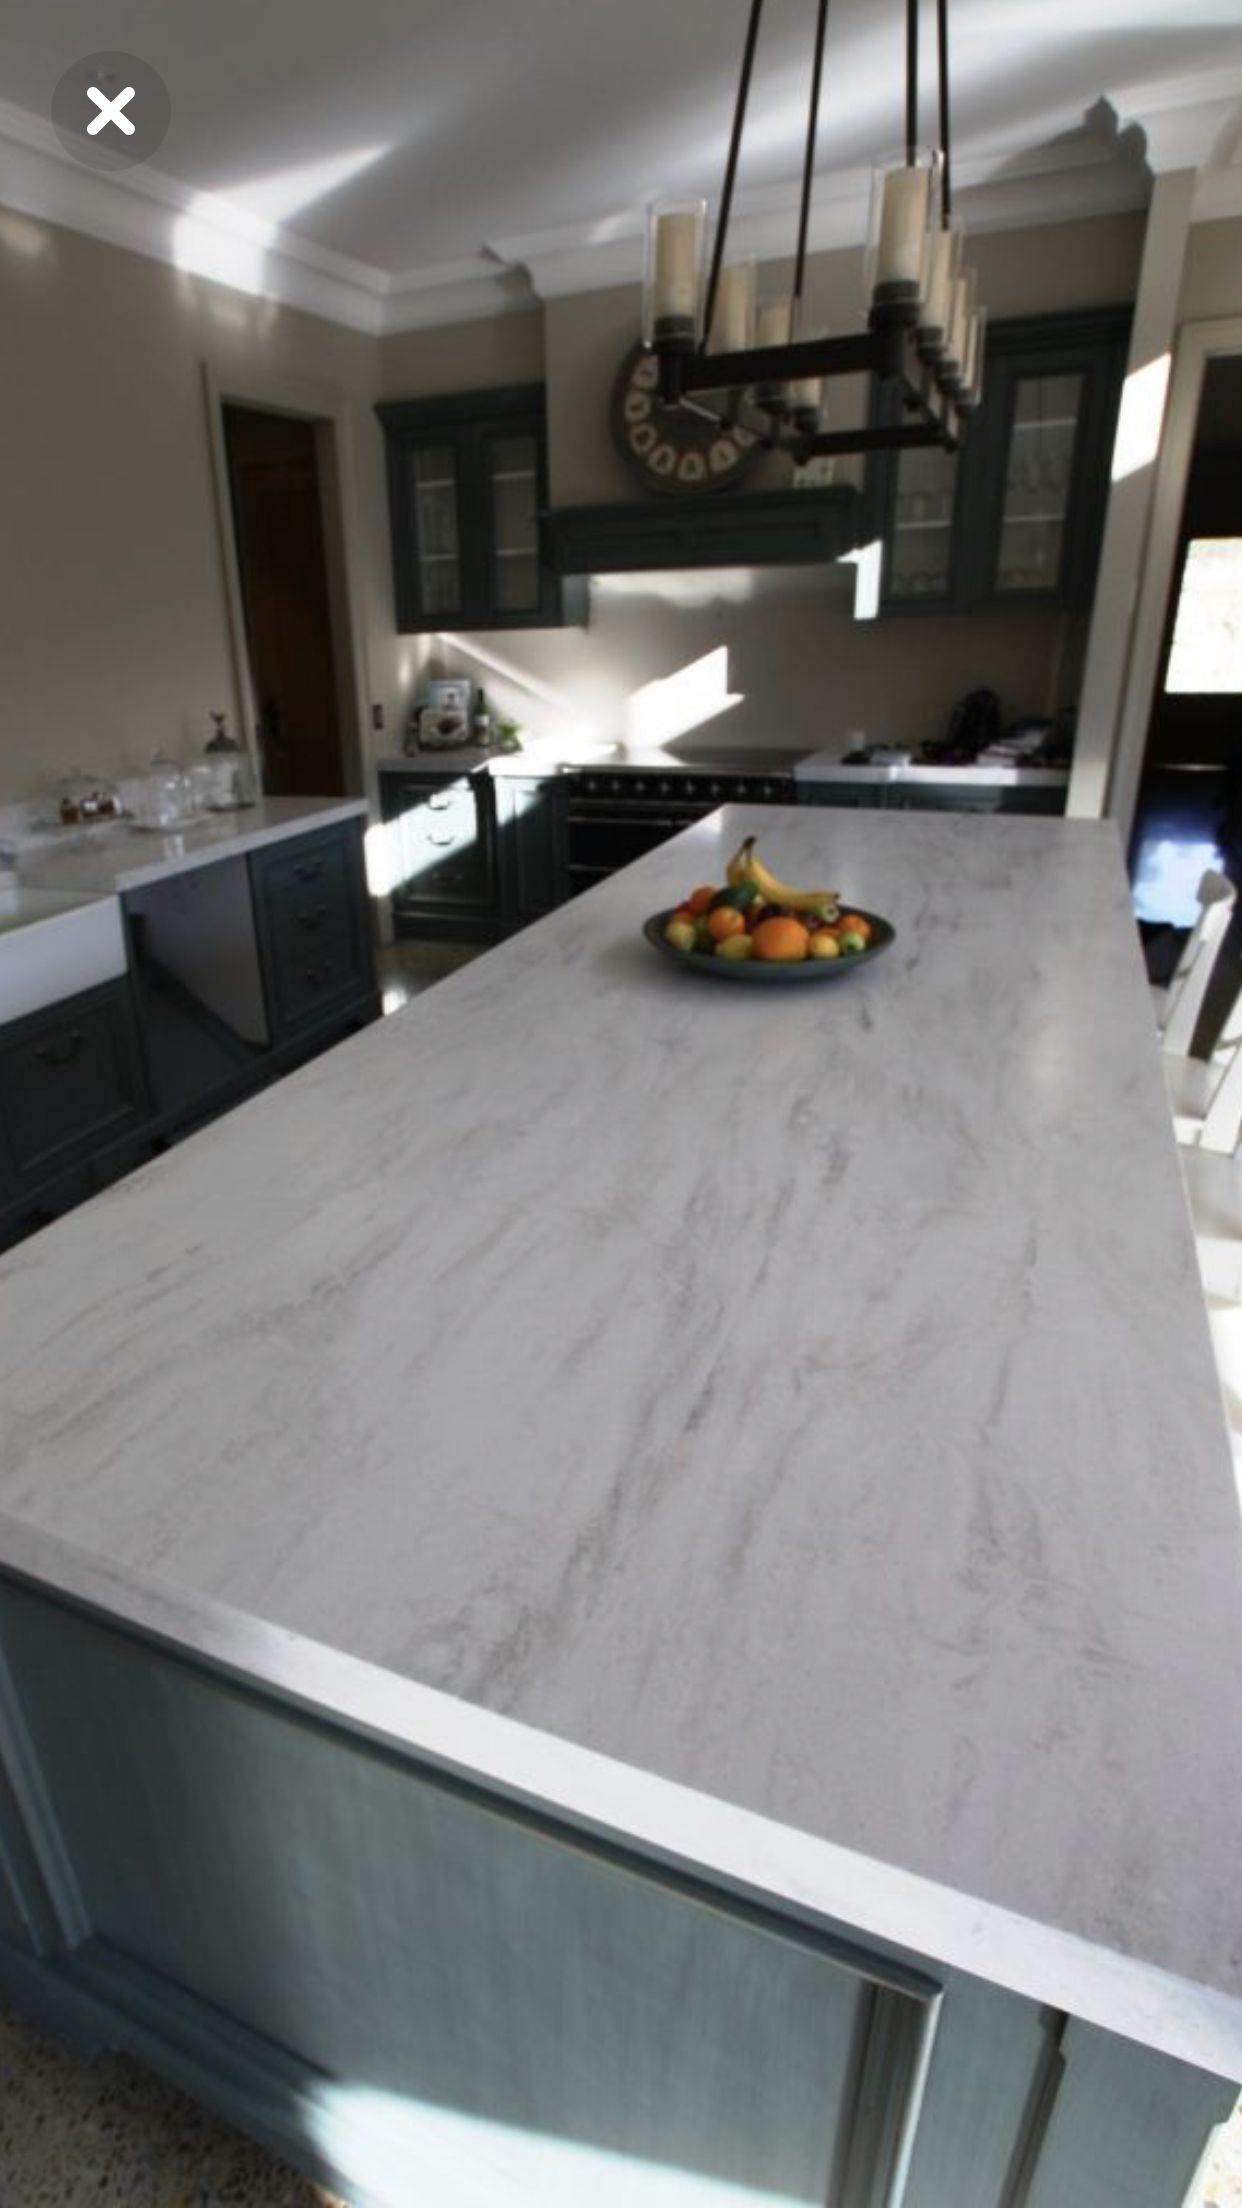 Pin By Kim Enright On House Ideas Corian Kitchen Countertops Kitchen Remodel Solid Surface Countertops Kitchen